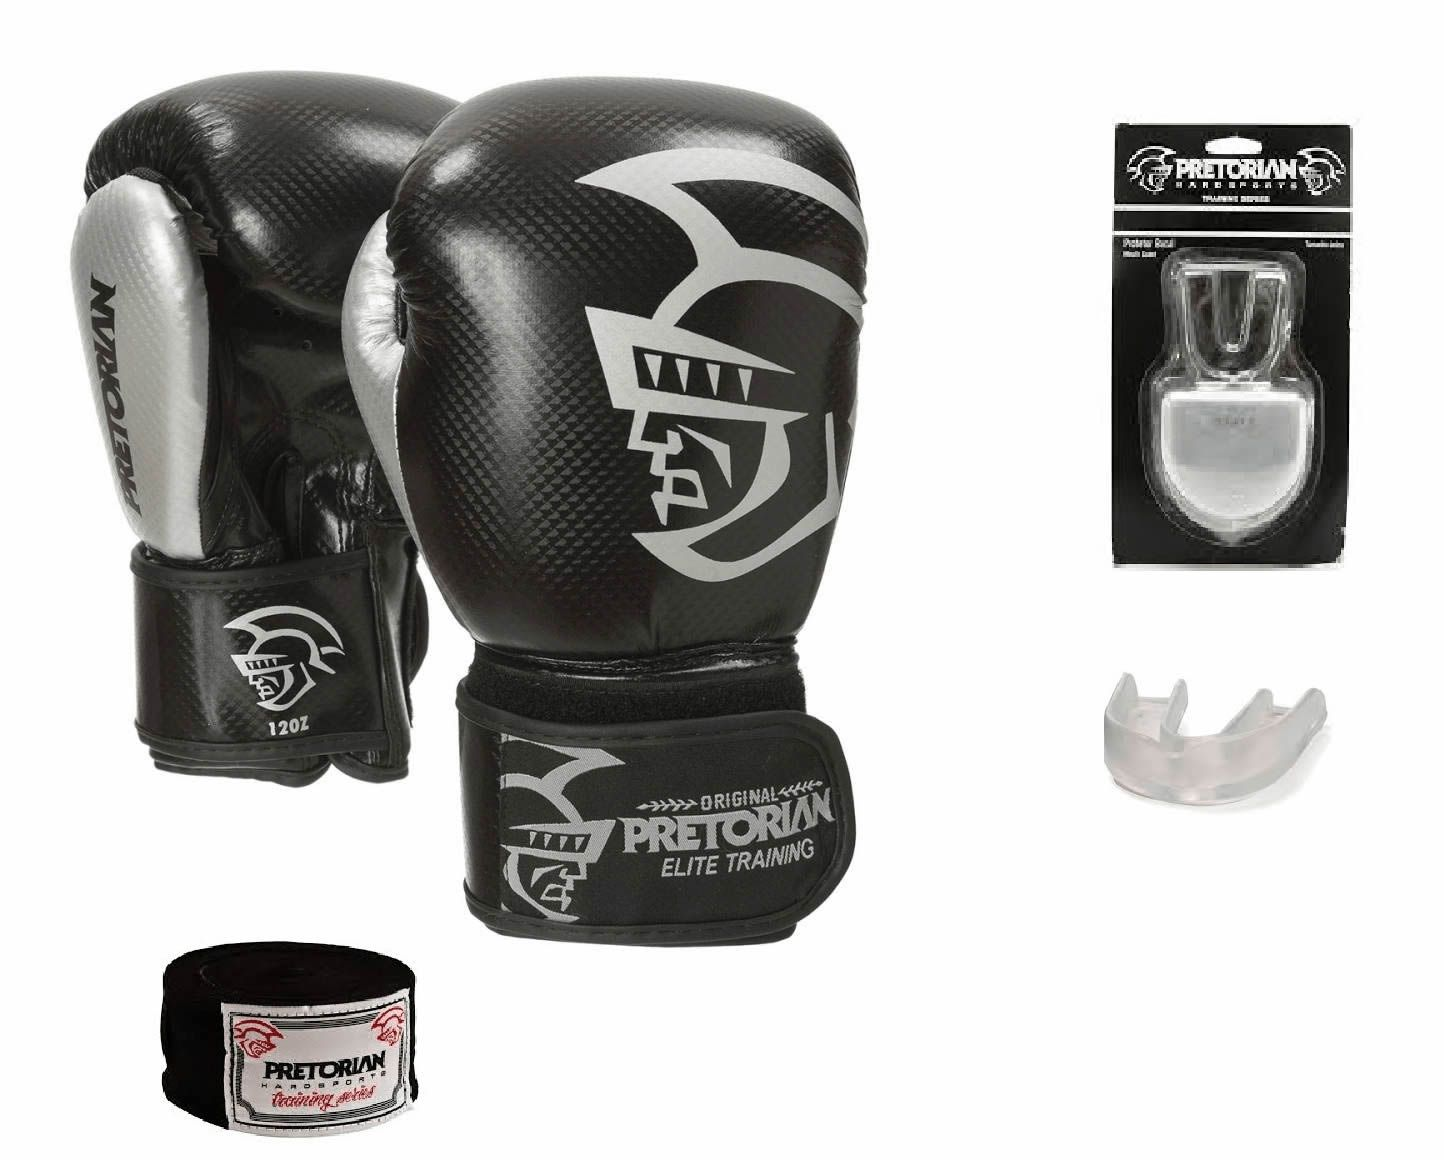 Luvas Boxe / Muay Thai - Elite Training - Preto/Prata - Pretorian - 12/14 OZ